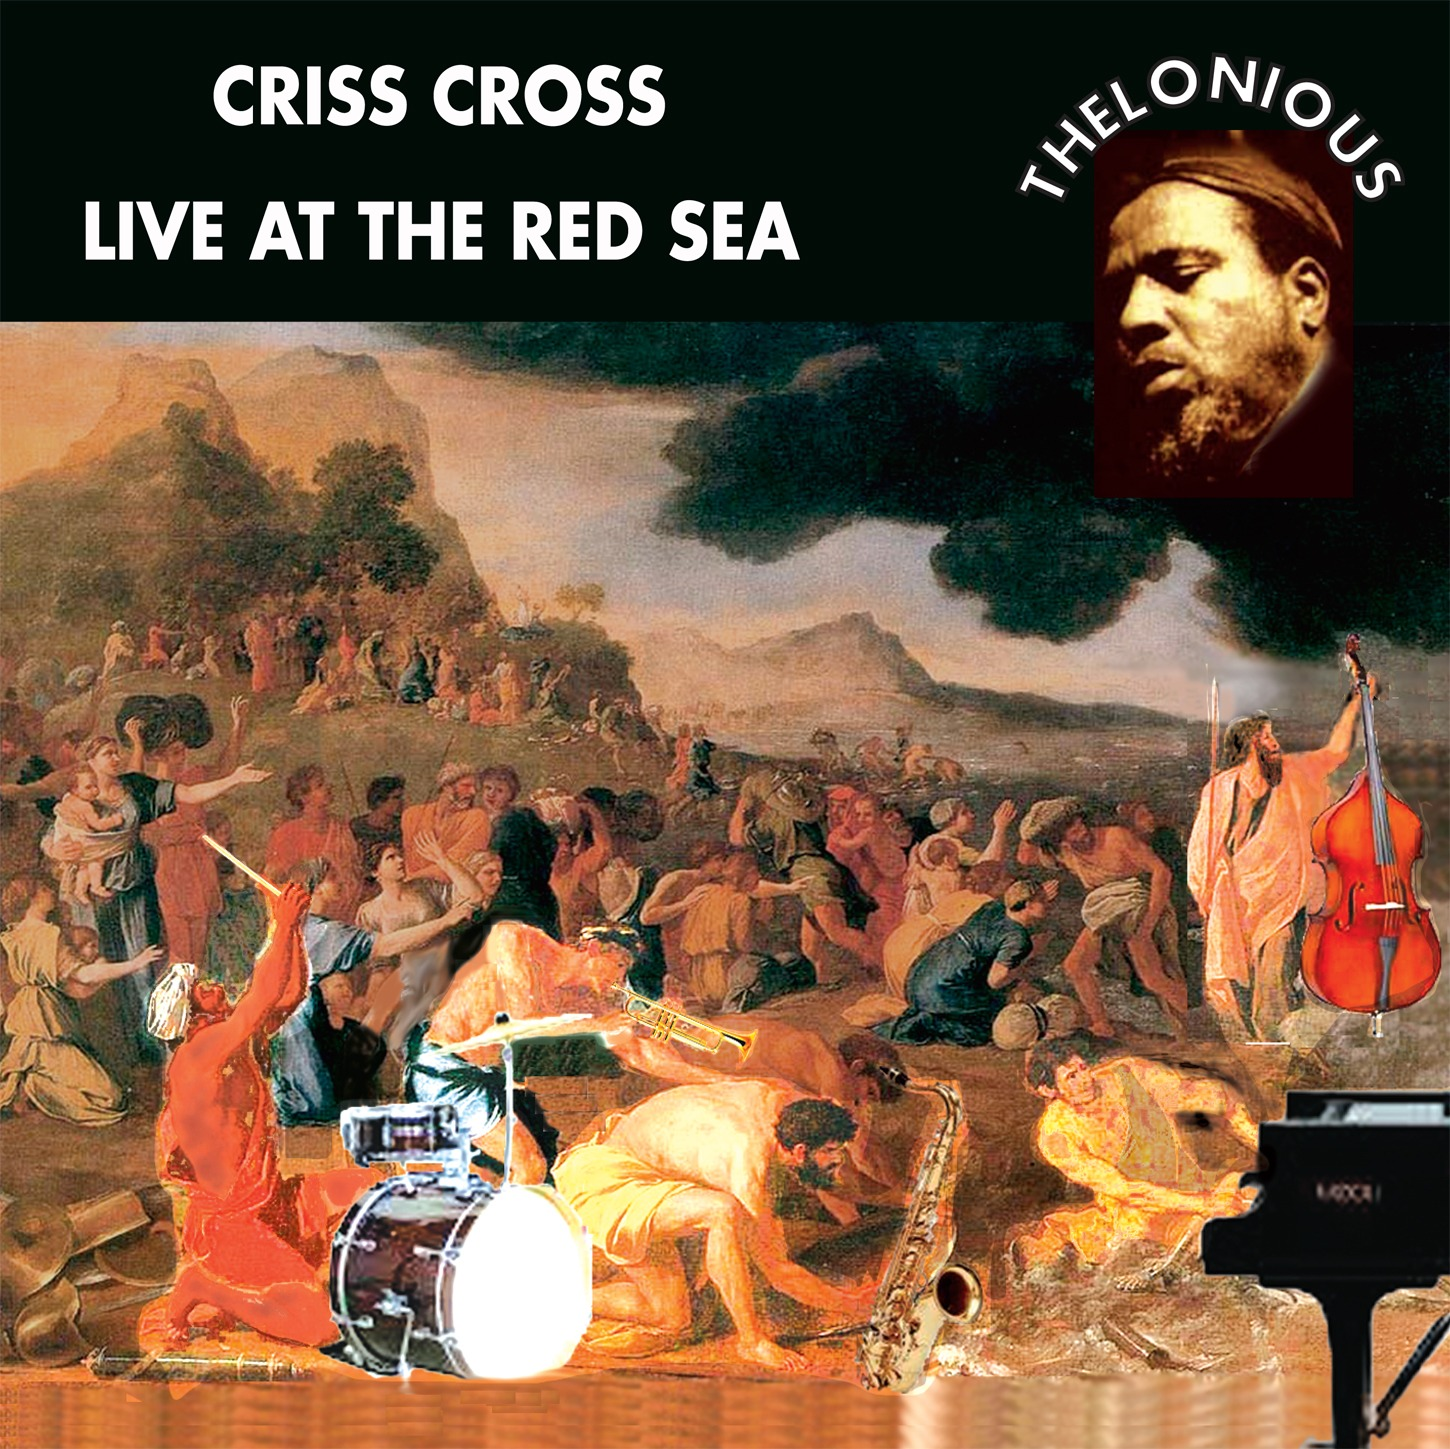 Criss Cross - Live at the Red Sea (K2B2 4569) 44.1/16bit.wav